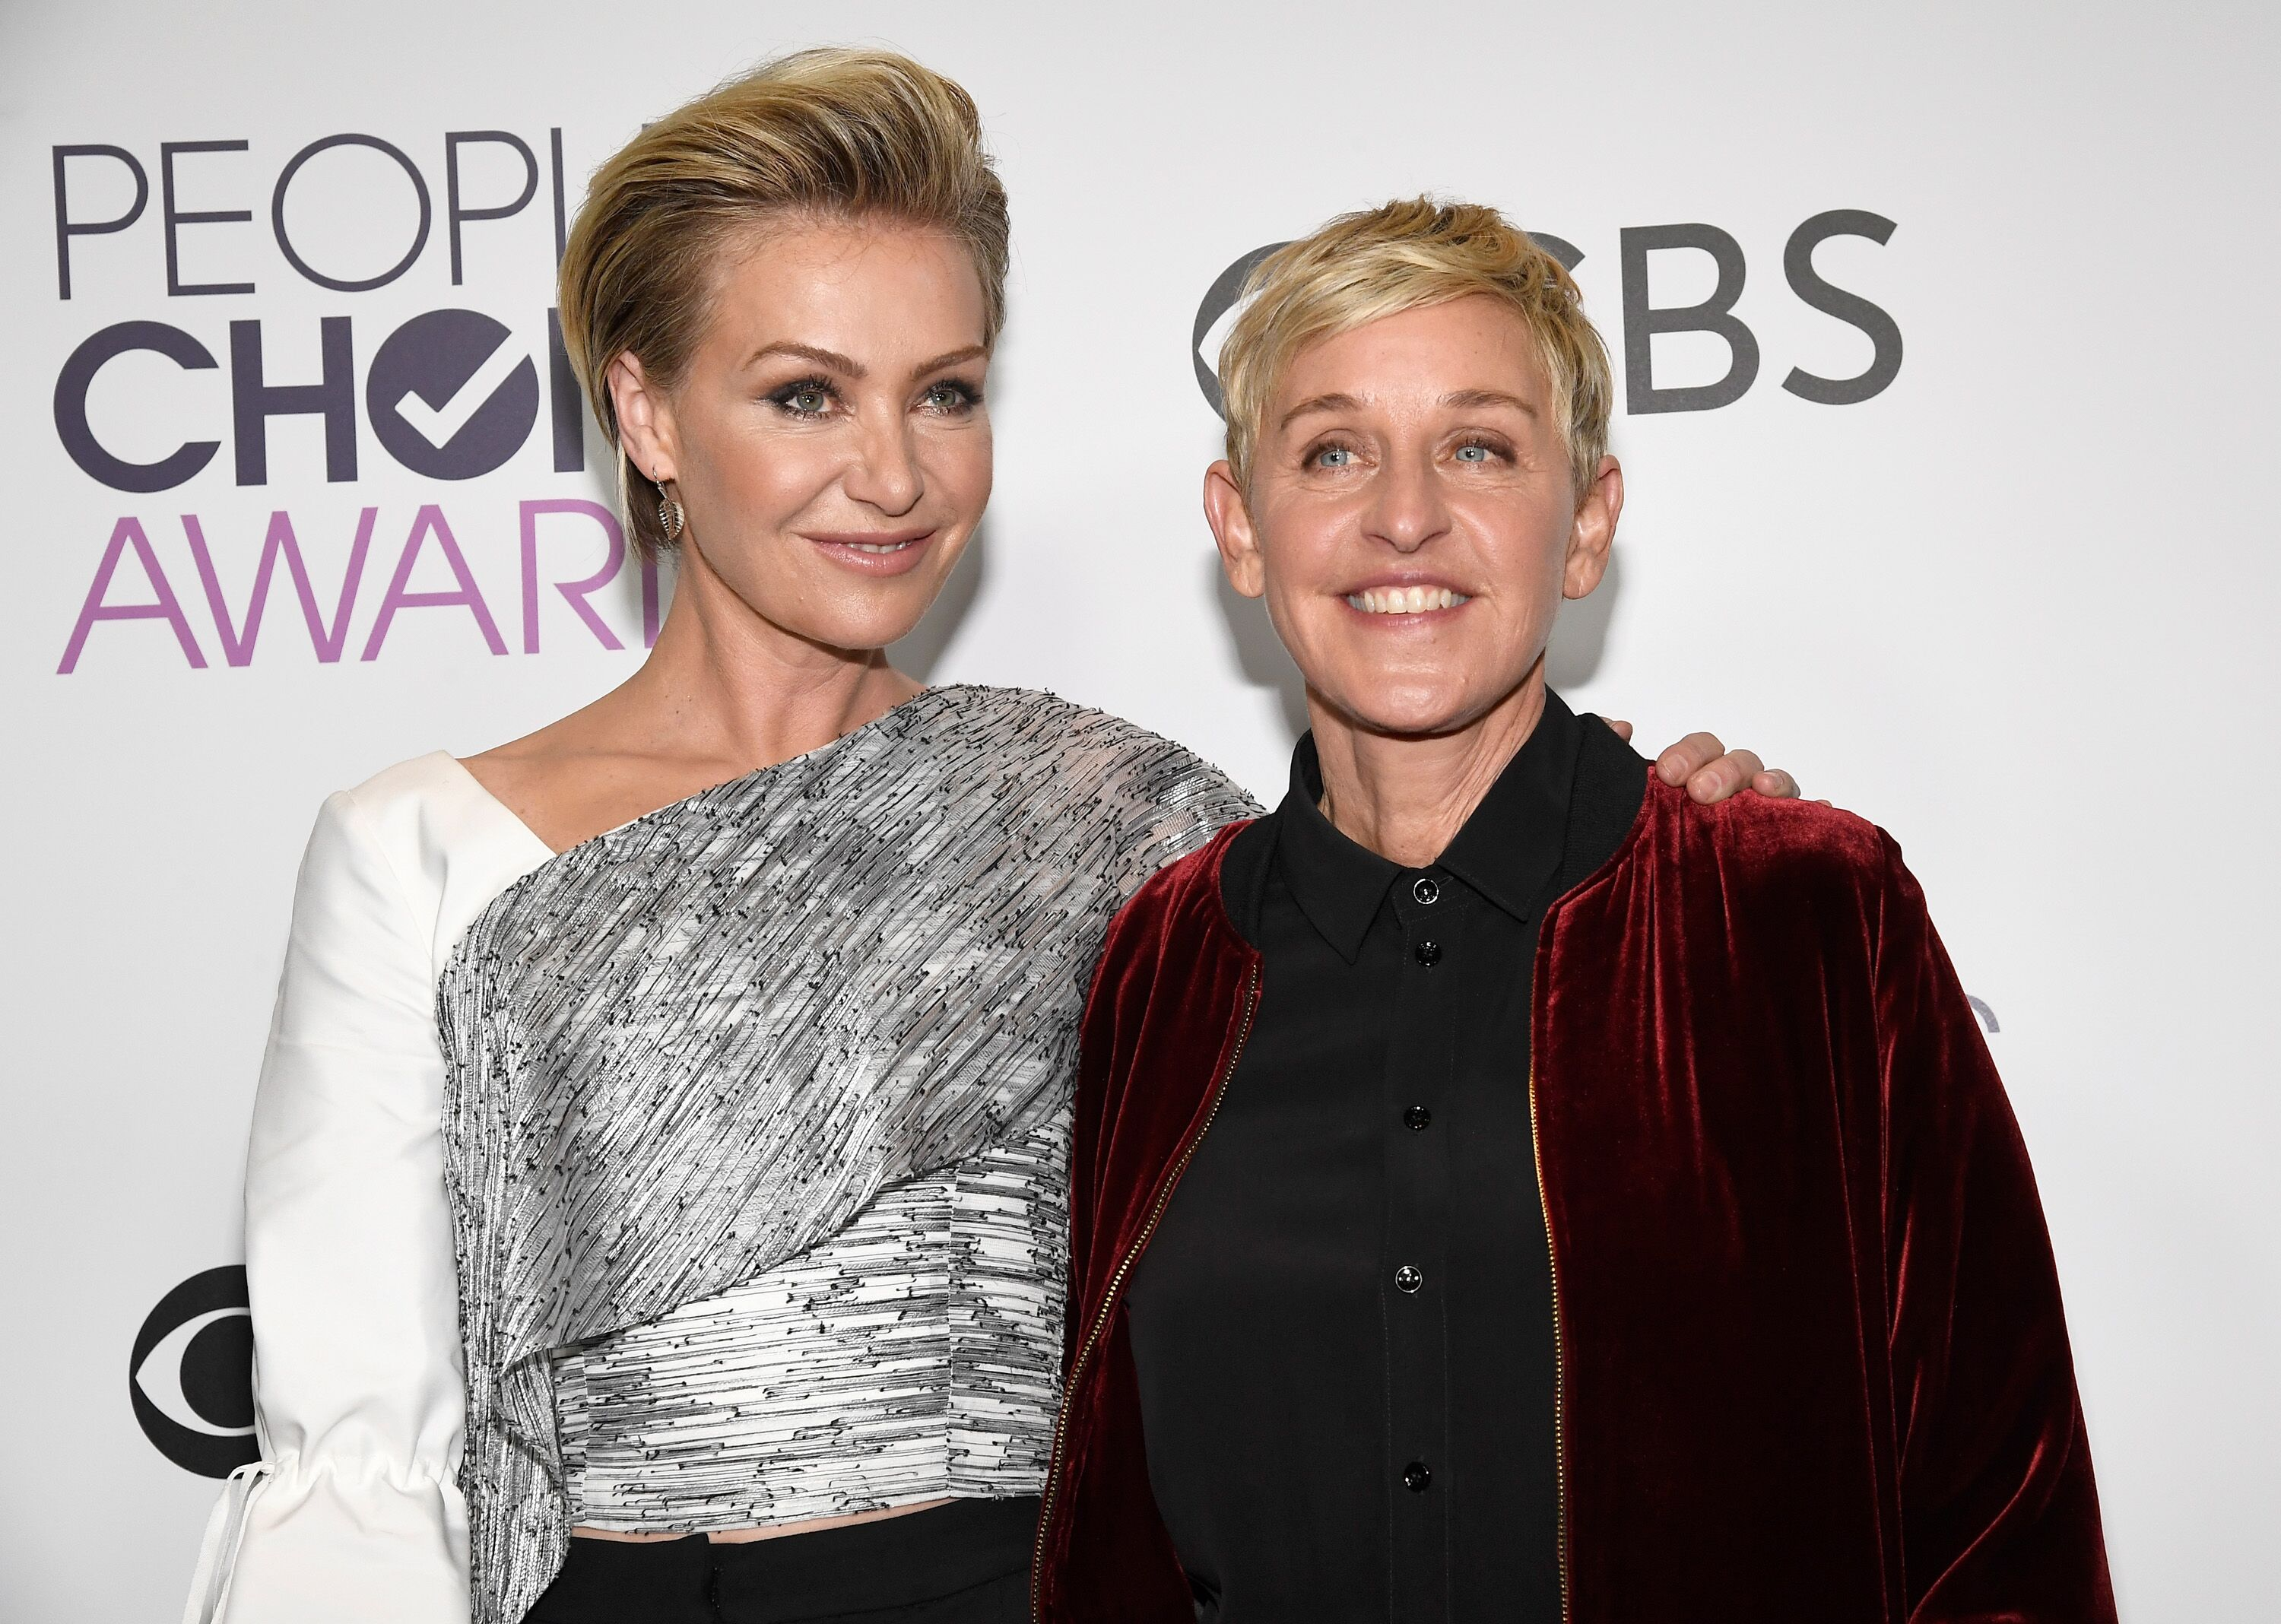 Ellen DeGeneres and wife Portia De Rossi at the People's Choice Awards on January 18, 2017, in Los Angeles, California | Photo: Kevork Djansezian/Getty Images